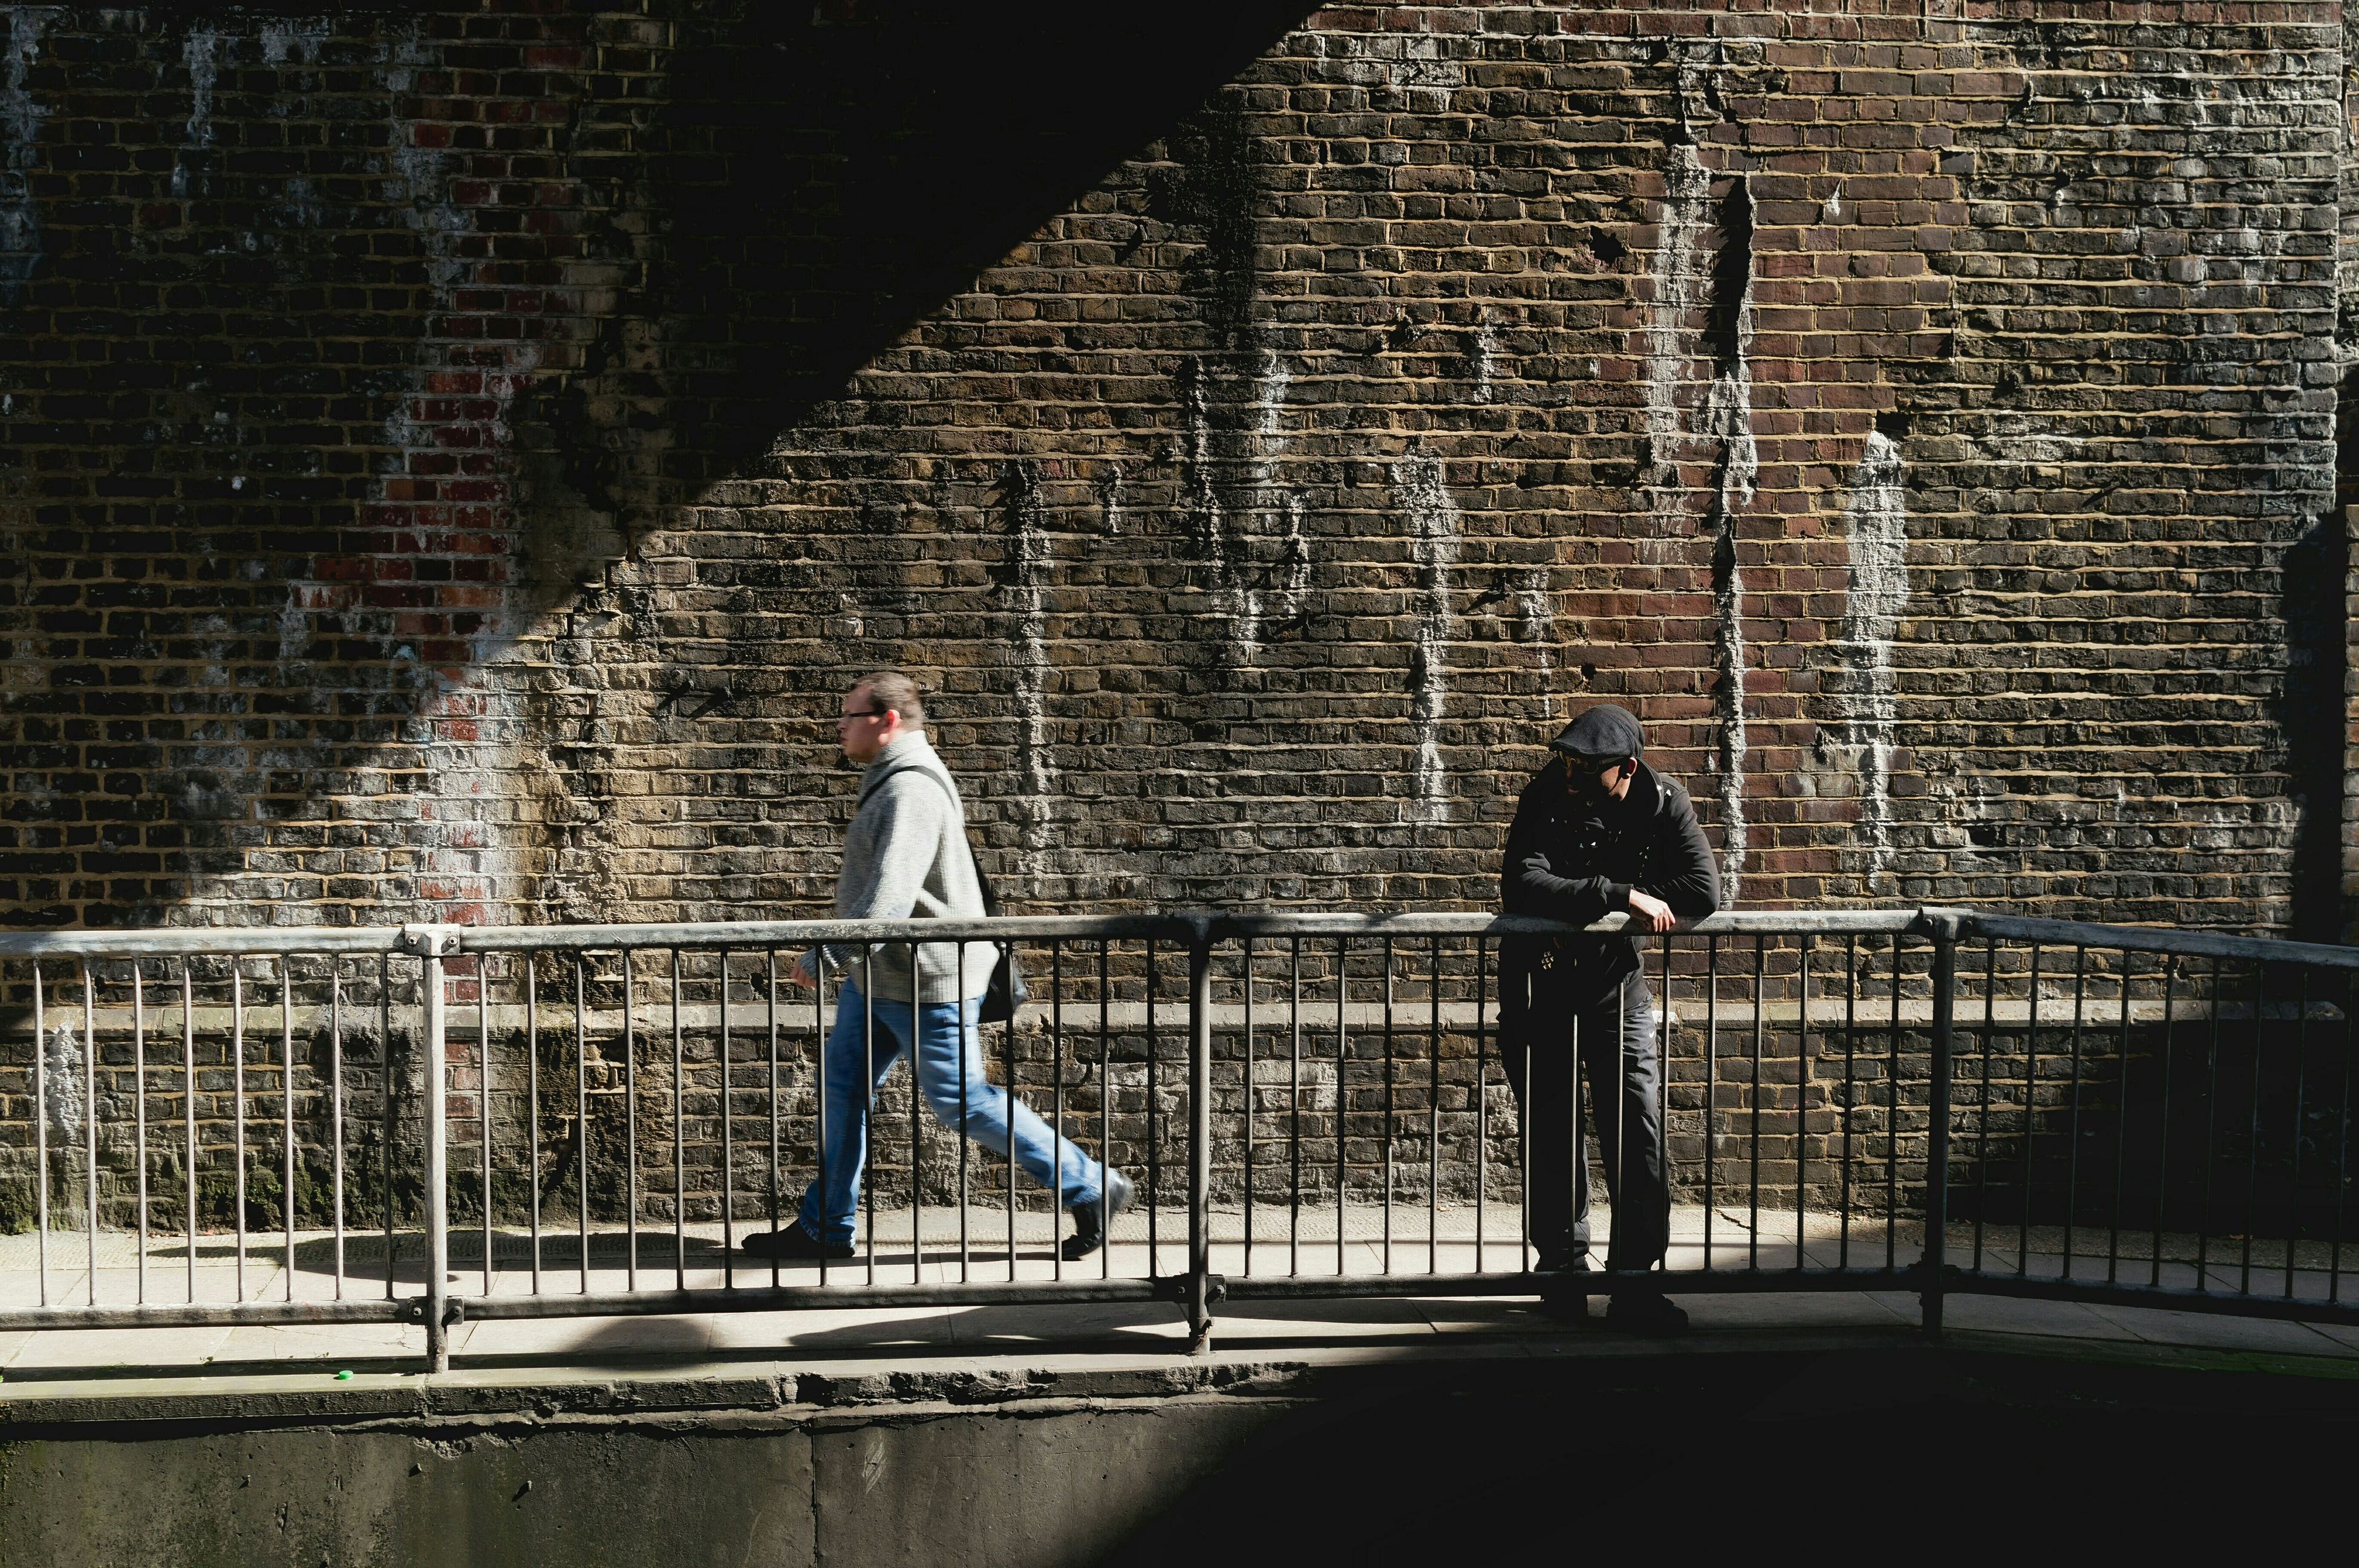 architecture, building exterior, built structure, lifestyles, full length, men, brick wall, leisure activity, bicycle, wall - building feature, railing, walking, building, person, city, side view, standing, casual clothing